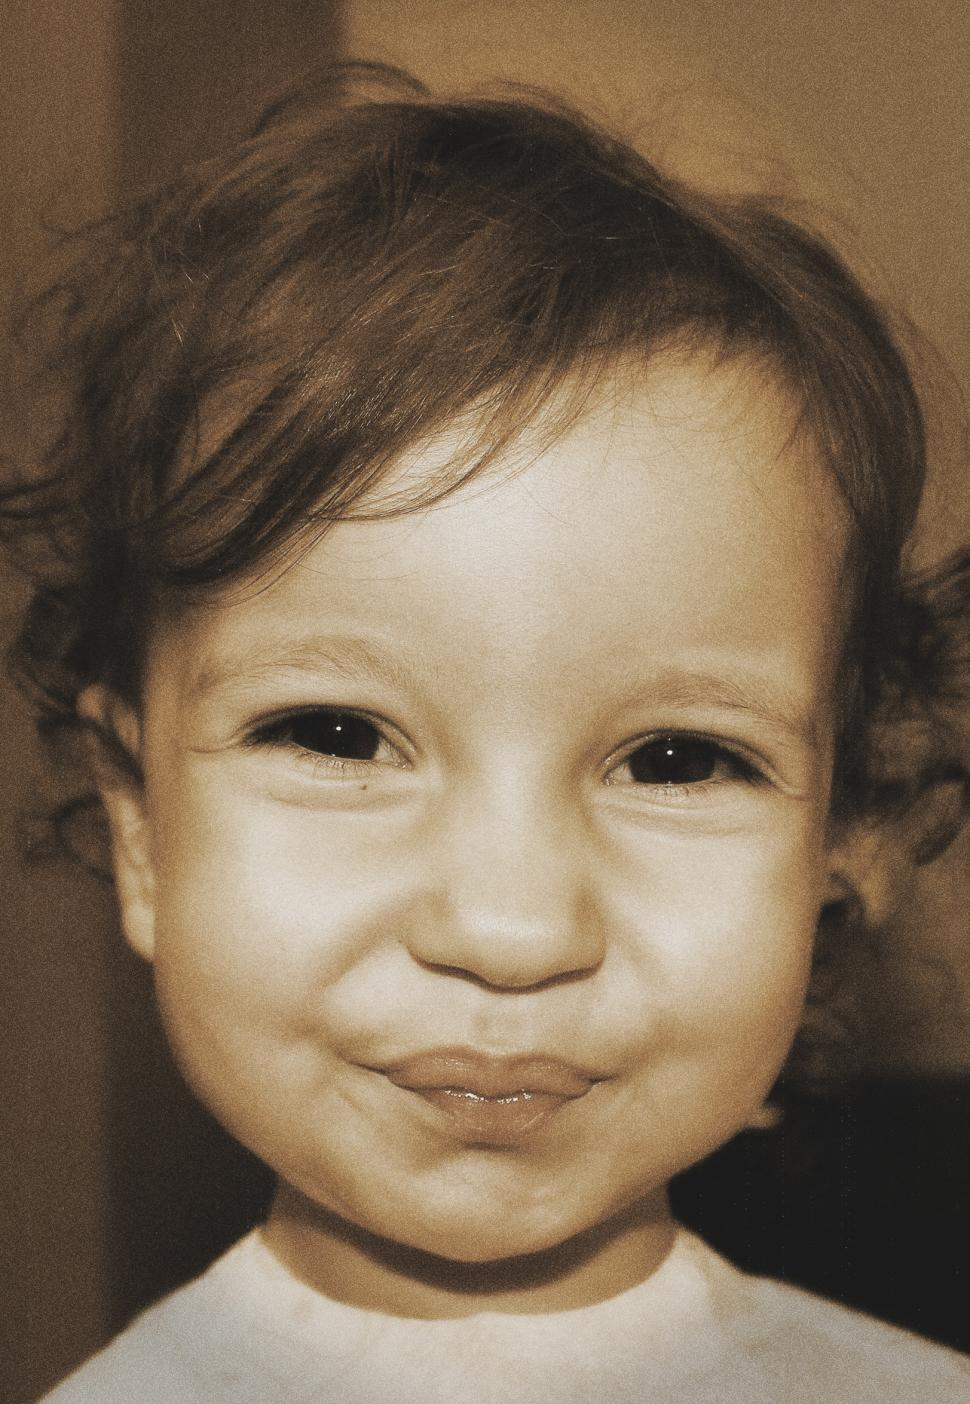 Download Free Stock HD Photo of Toddler smiling in a funny and sweet way - slightly aged sepia t Online